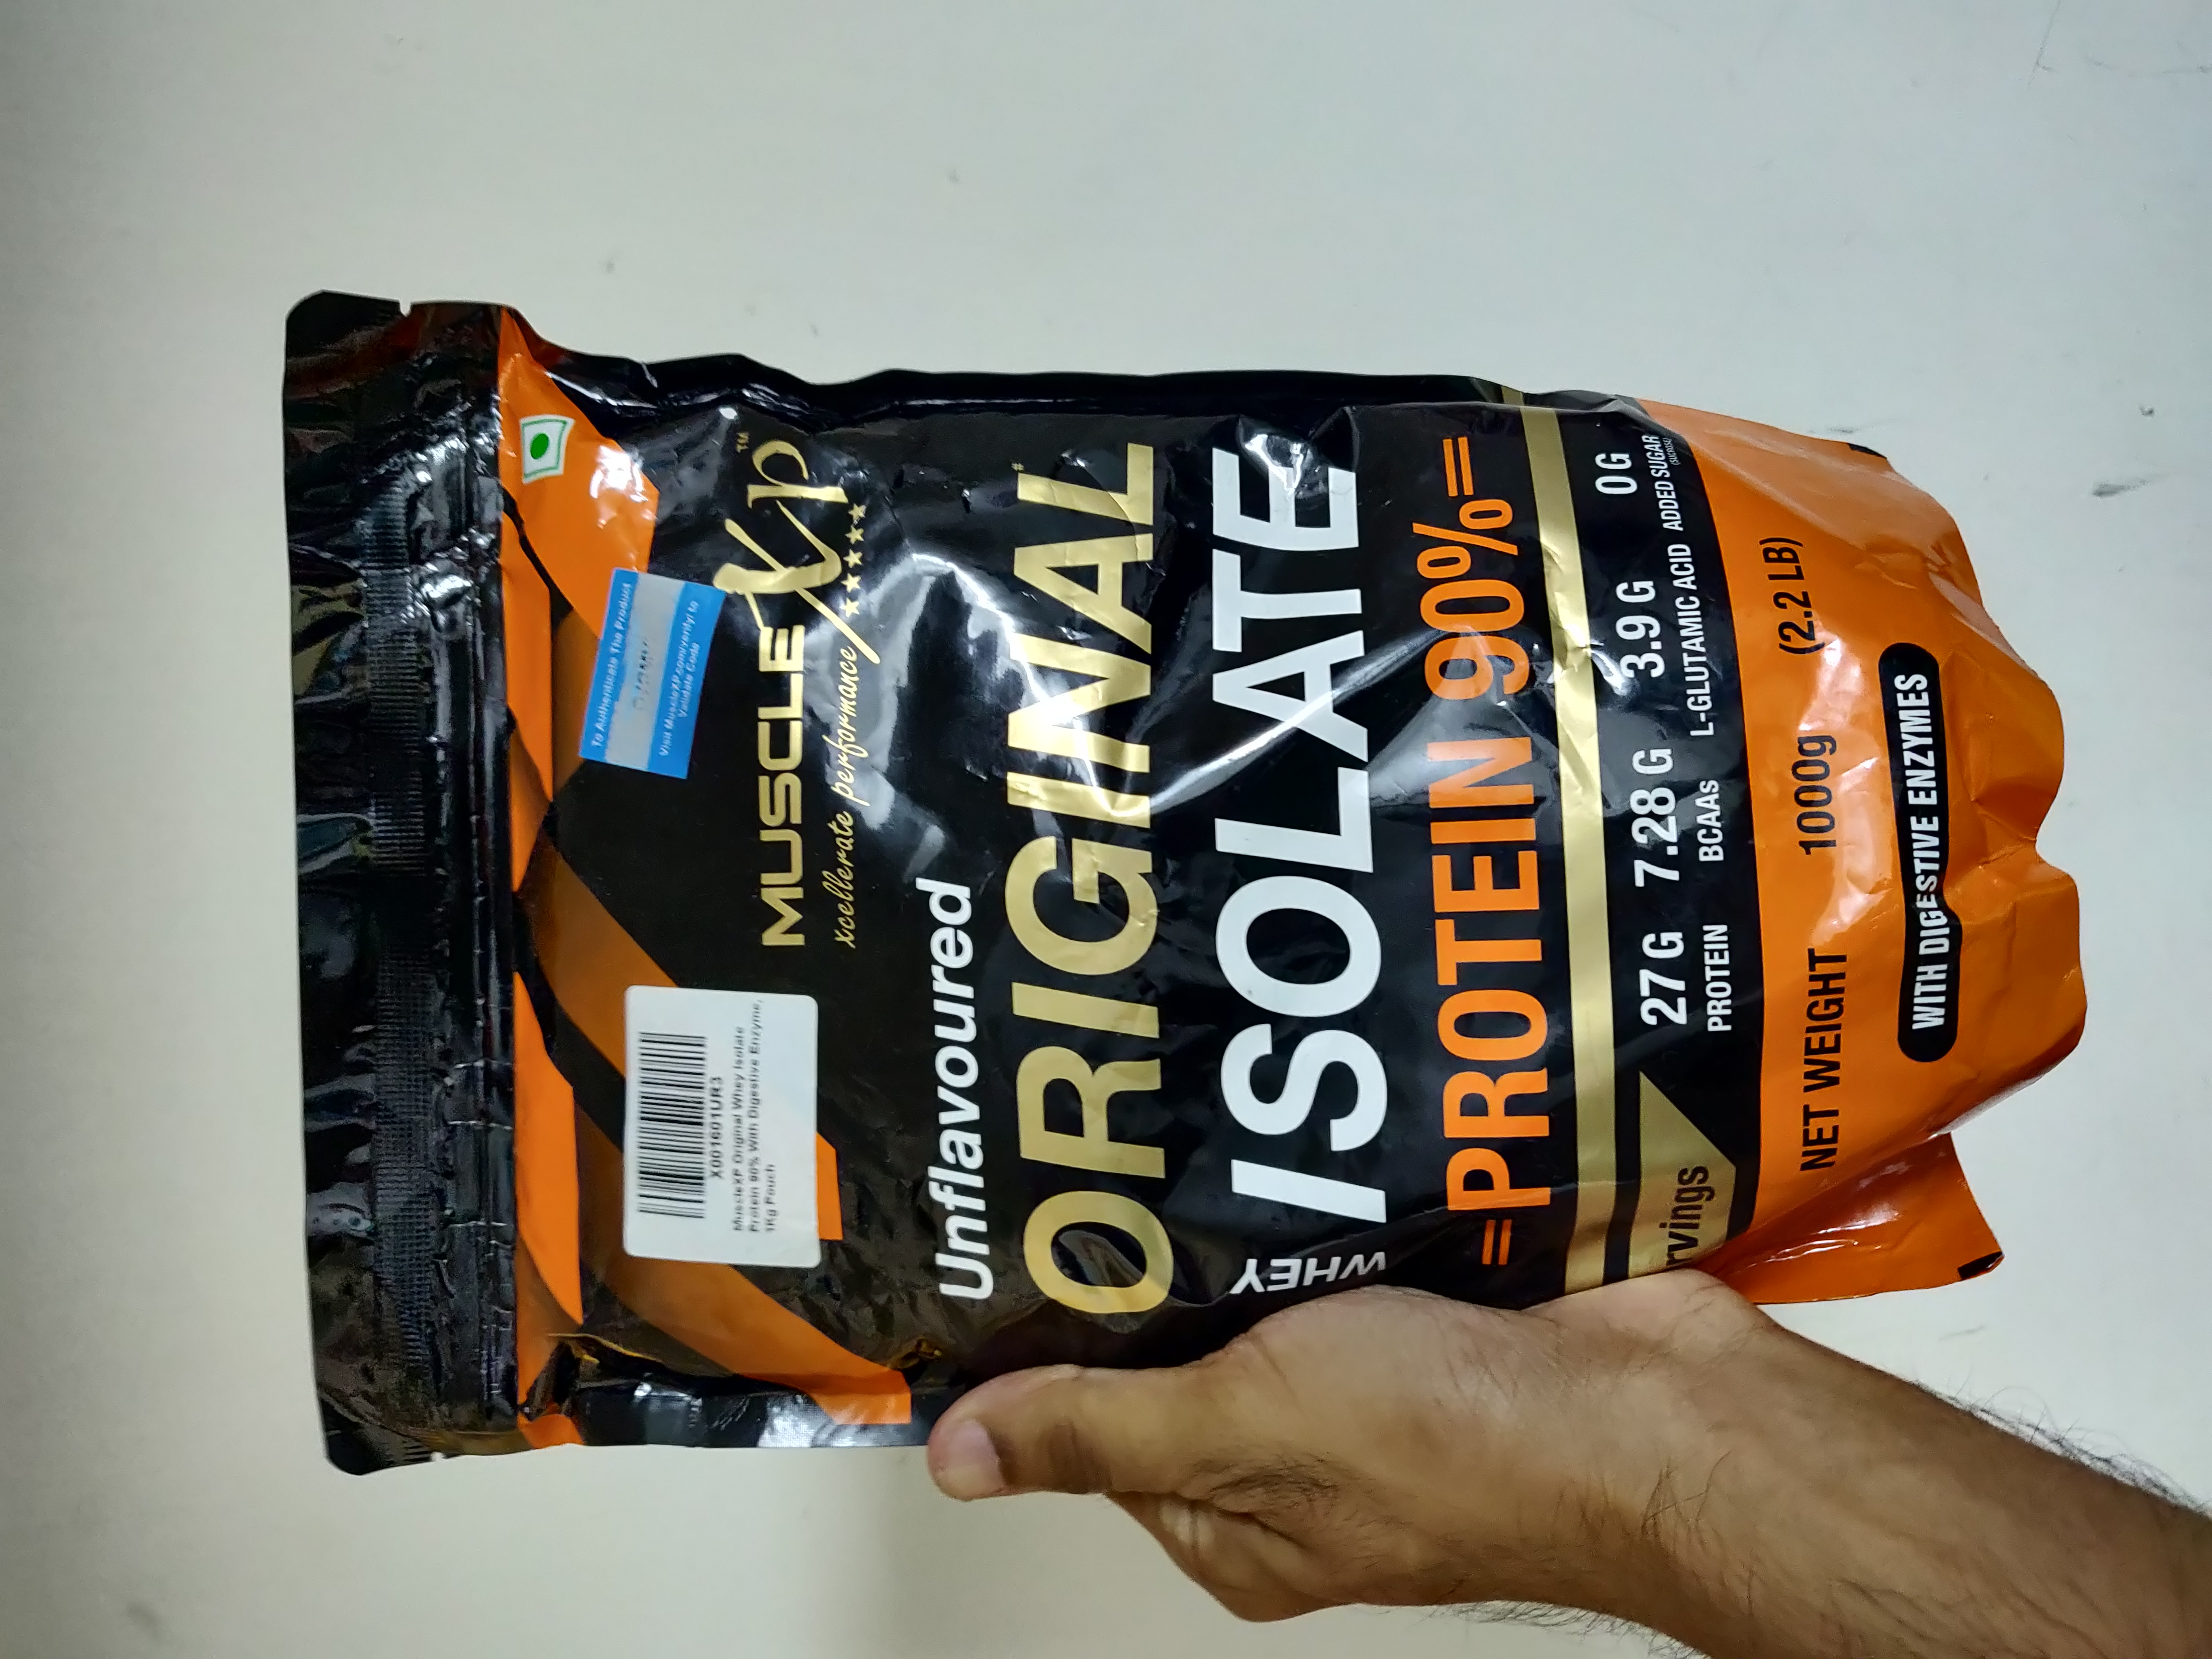 MuscleXP Original Whey Isolate Protein 90% With Digestive Enzyme-A Great protein-By hkmurali-2